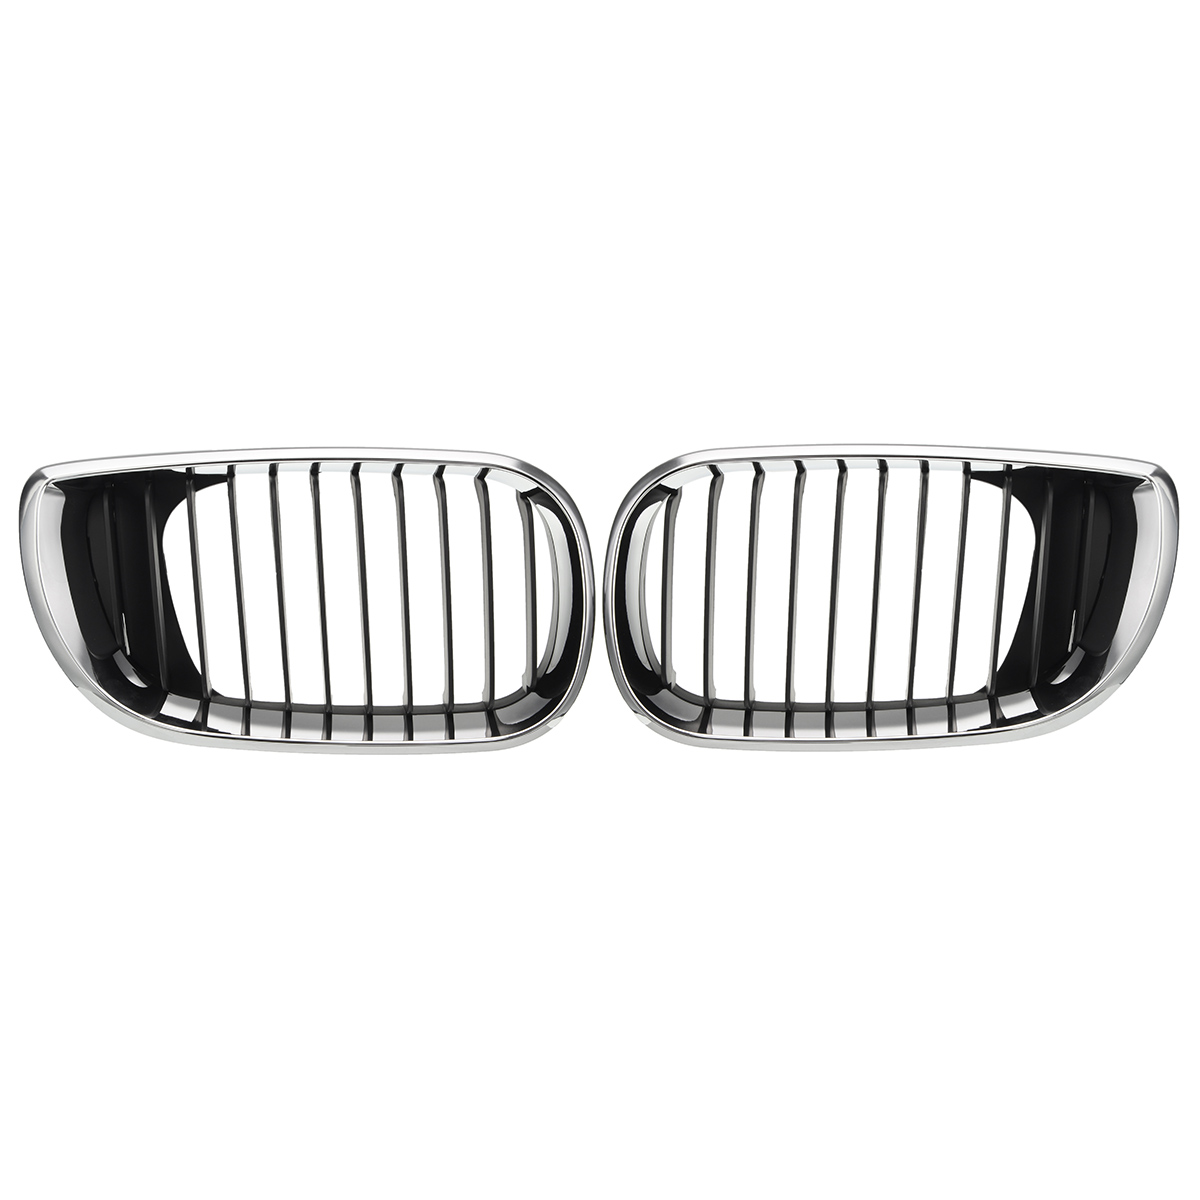 Pair L+R Chrome Car Front Kidney Grille Grill For BMW E46 3 Series 4-Door Saloon Estate 2001 2002 2003 2004 2005 51137030546